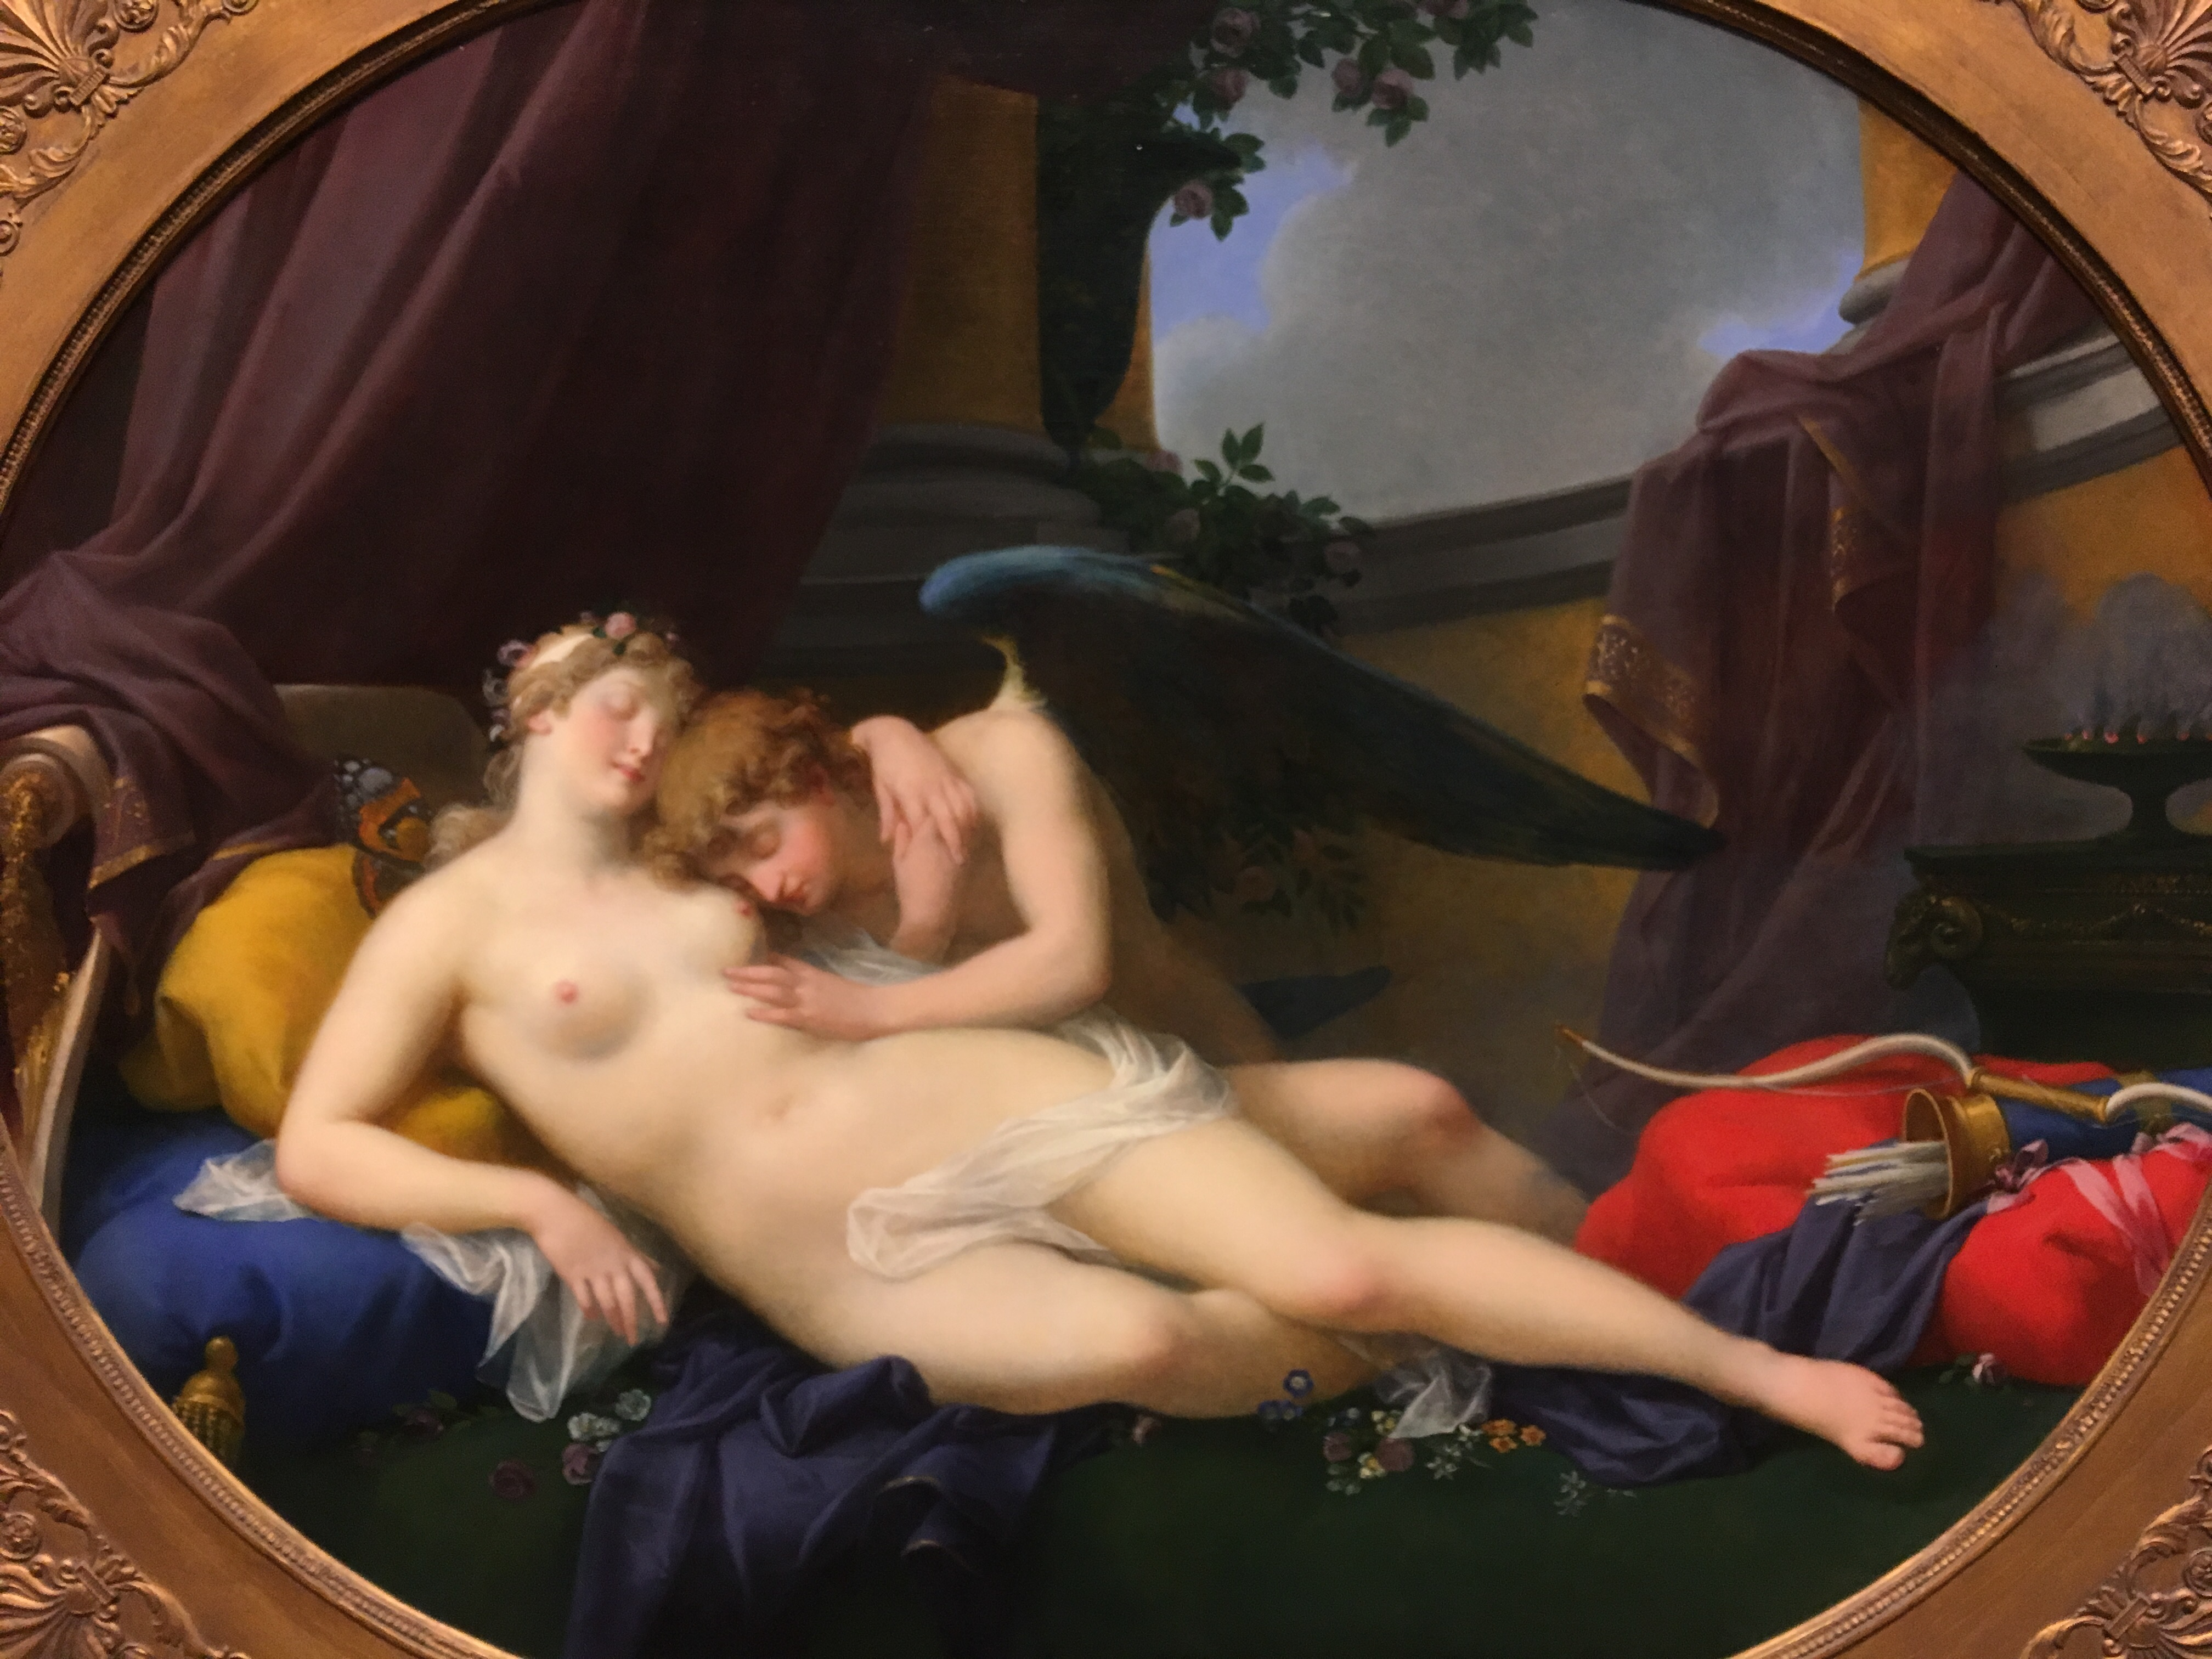 Cupid and Psycke. Note how again how the lighting, the arms, and heads form a circle of focus.  The sky and details of the room support a warmth, a resignation of the feeling the two have toward one another .